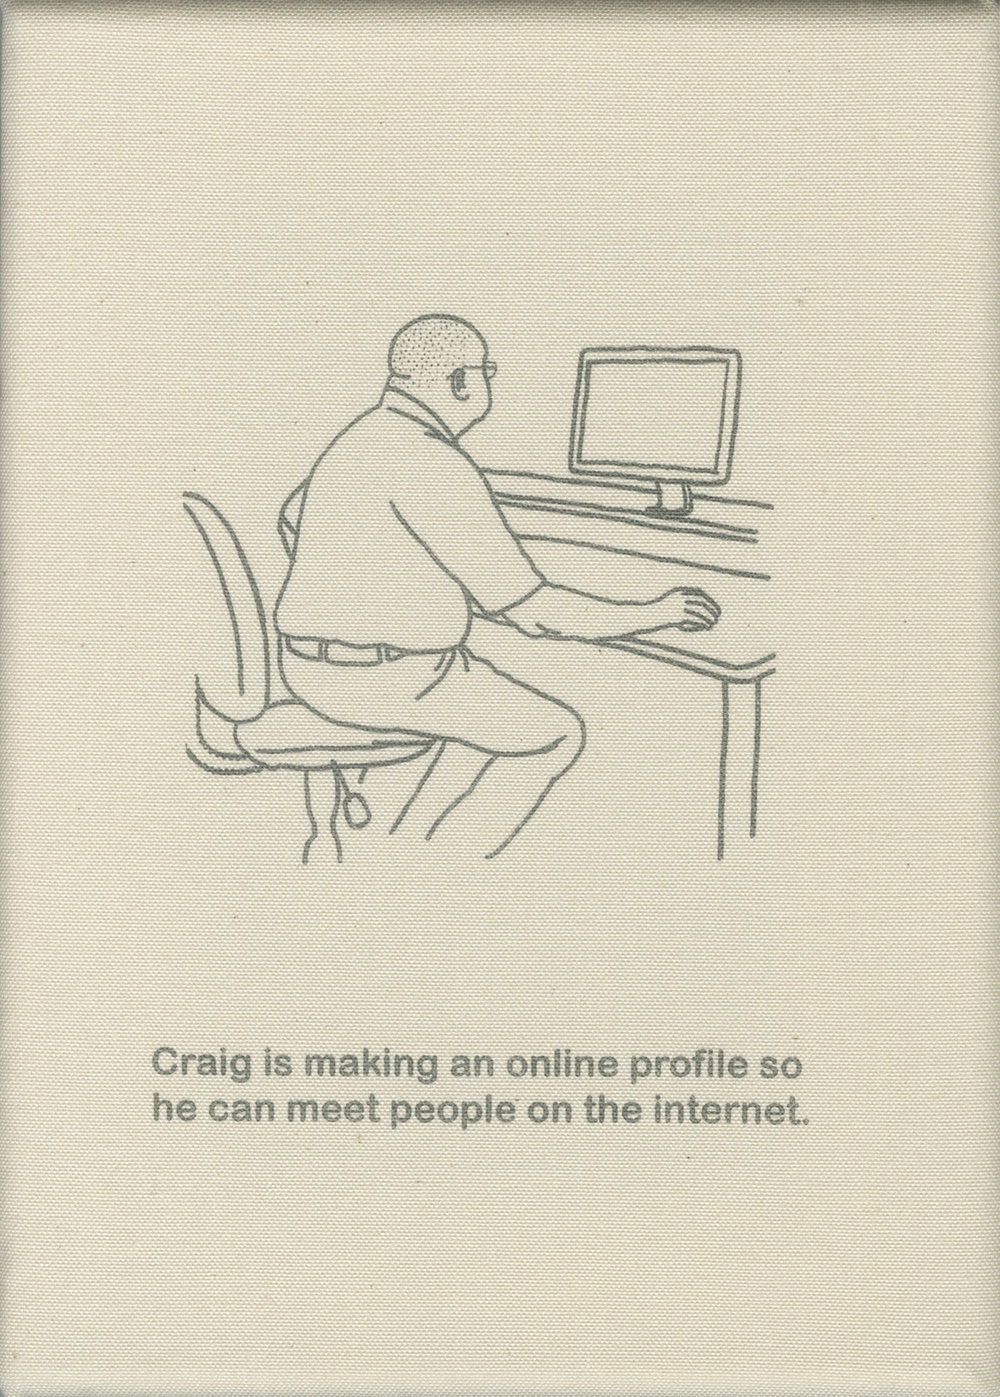 Craig is making an online profile so he can meet people on the internet.